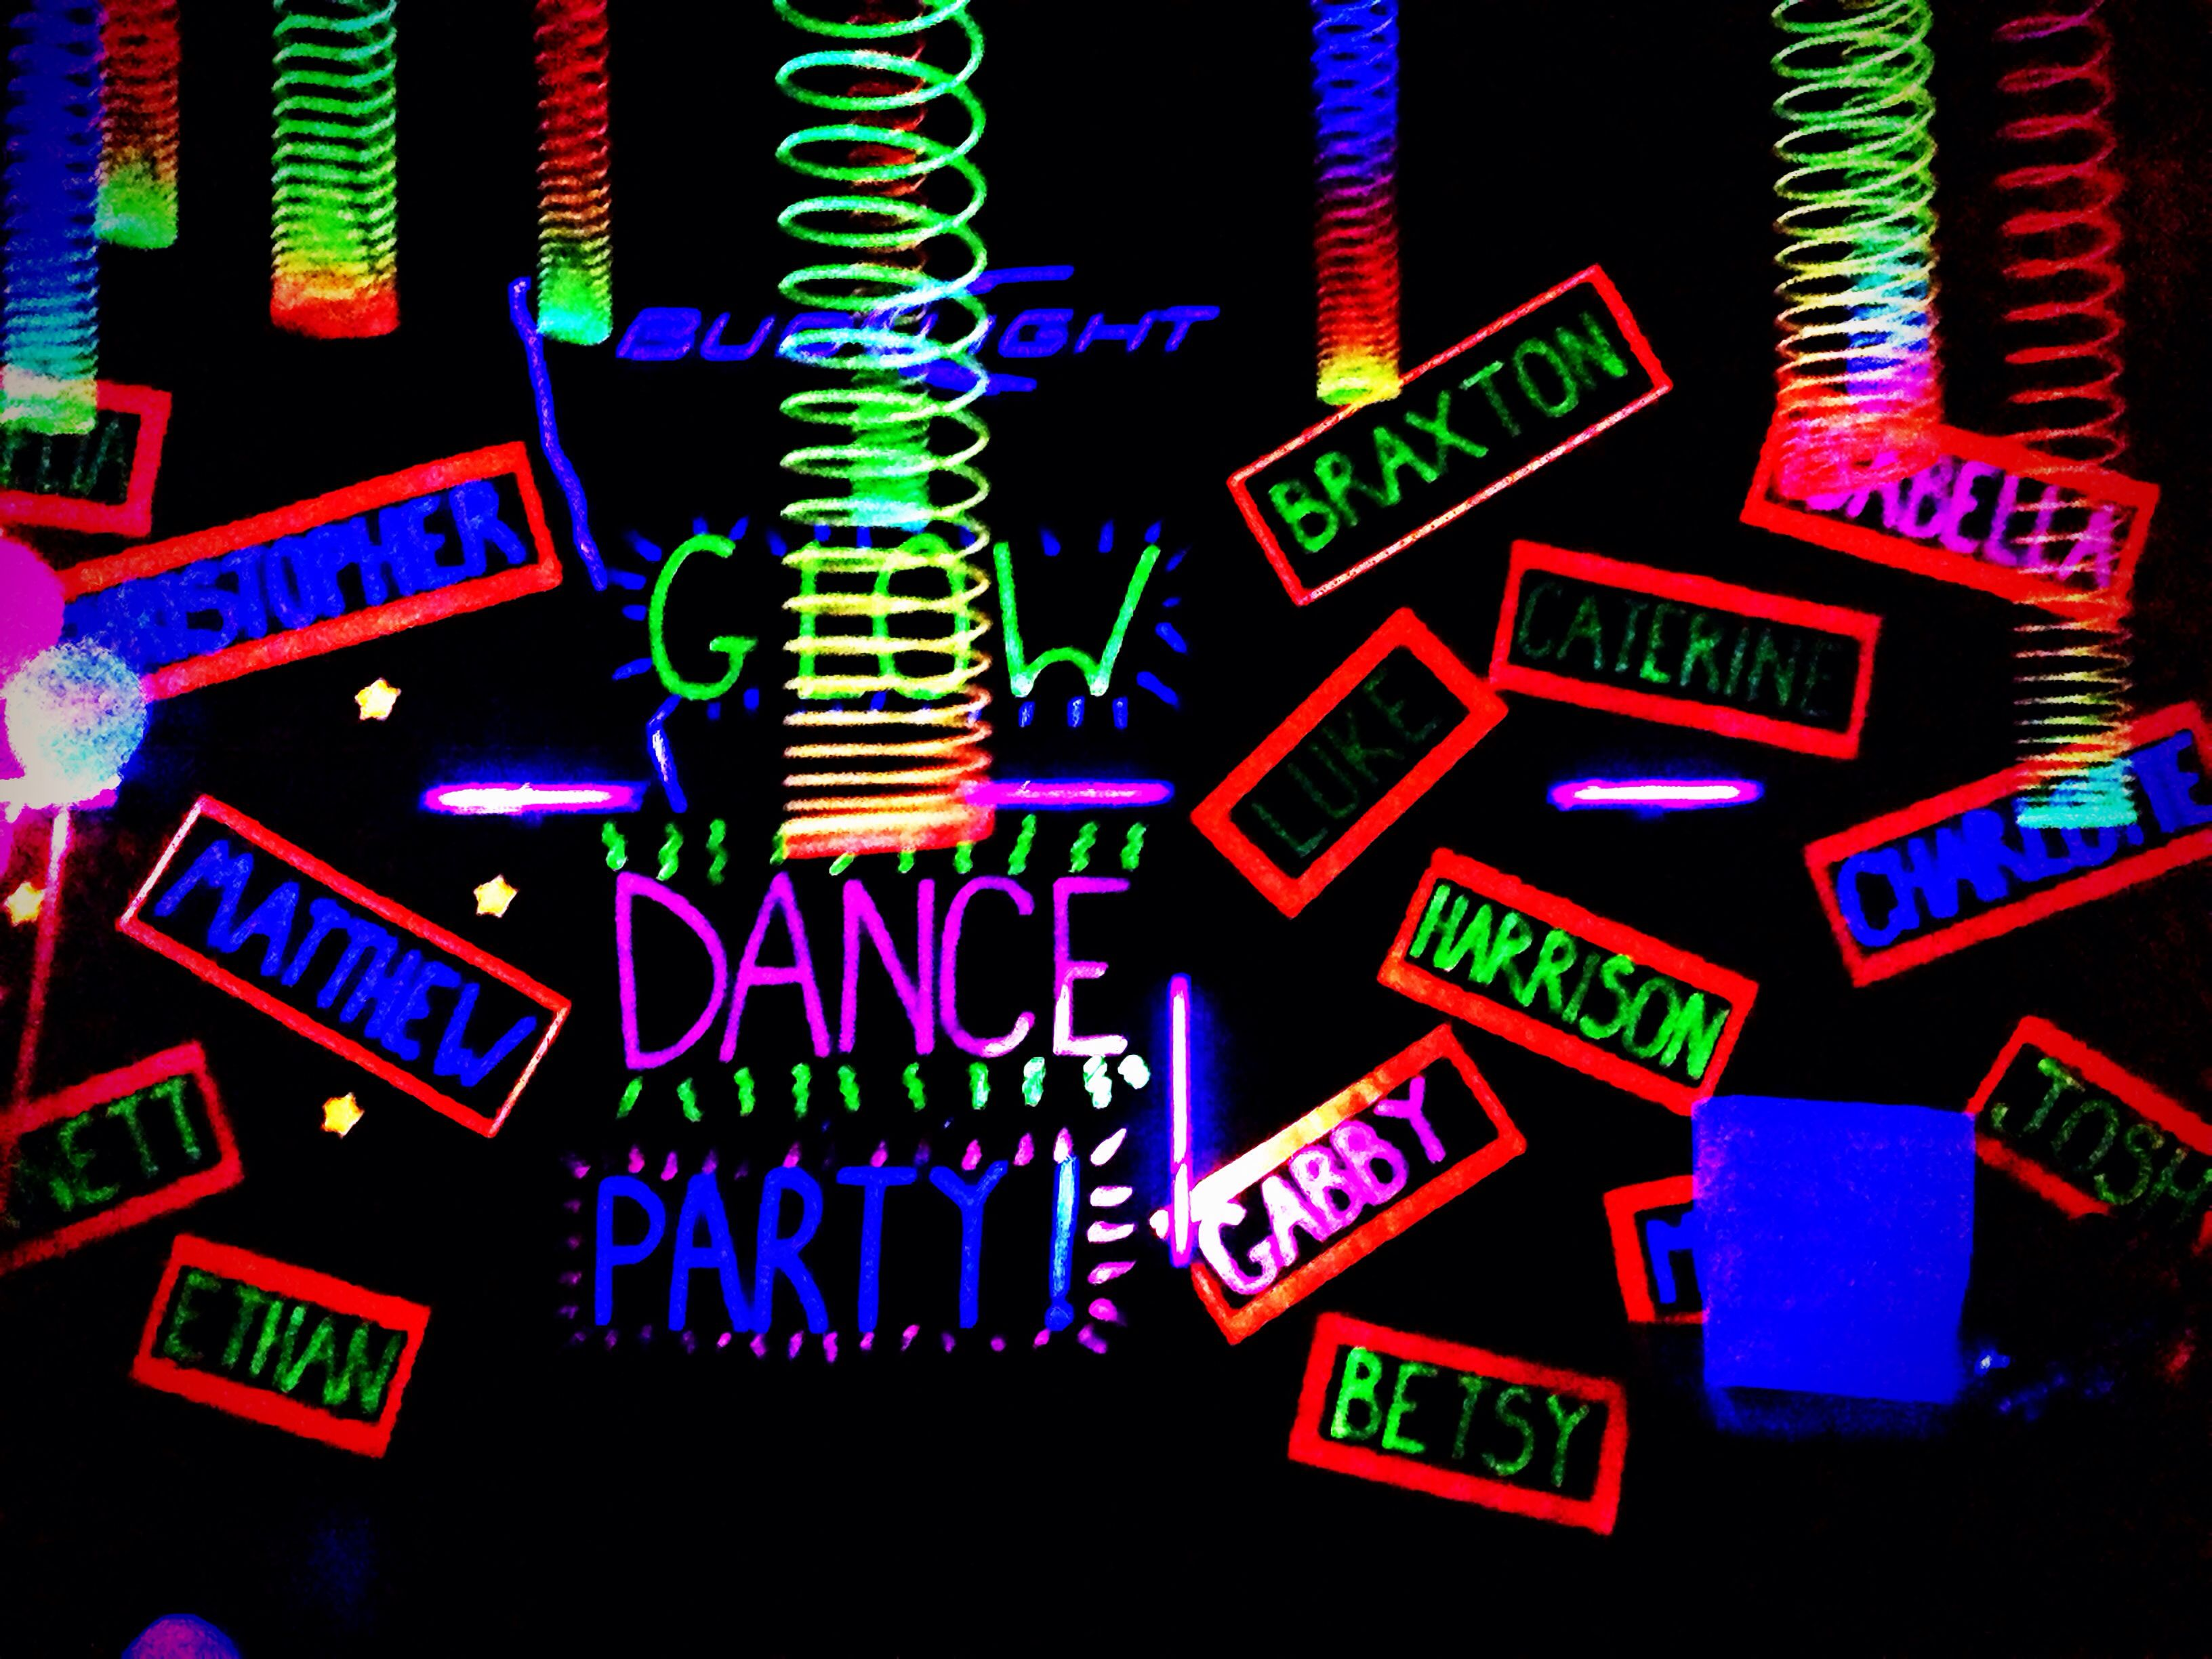 Glow Party Decorations Black Paper With Fluorescent Paint And